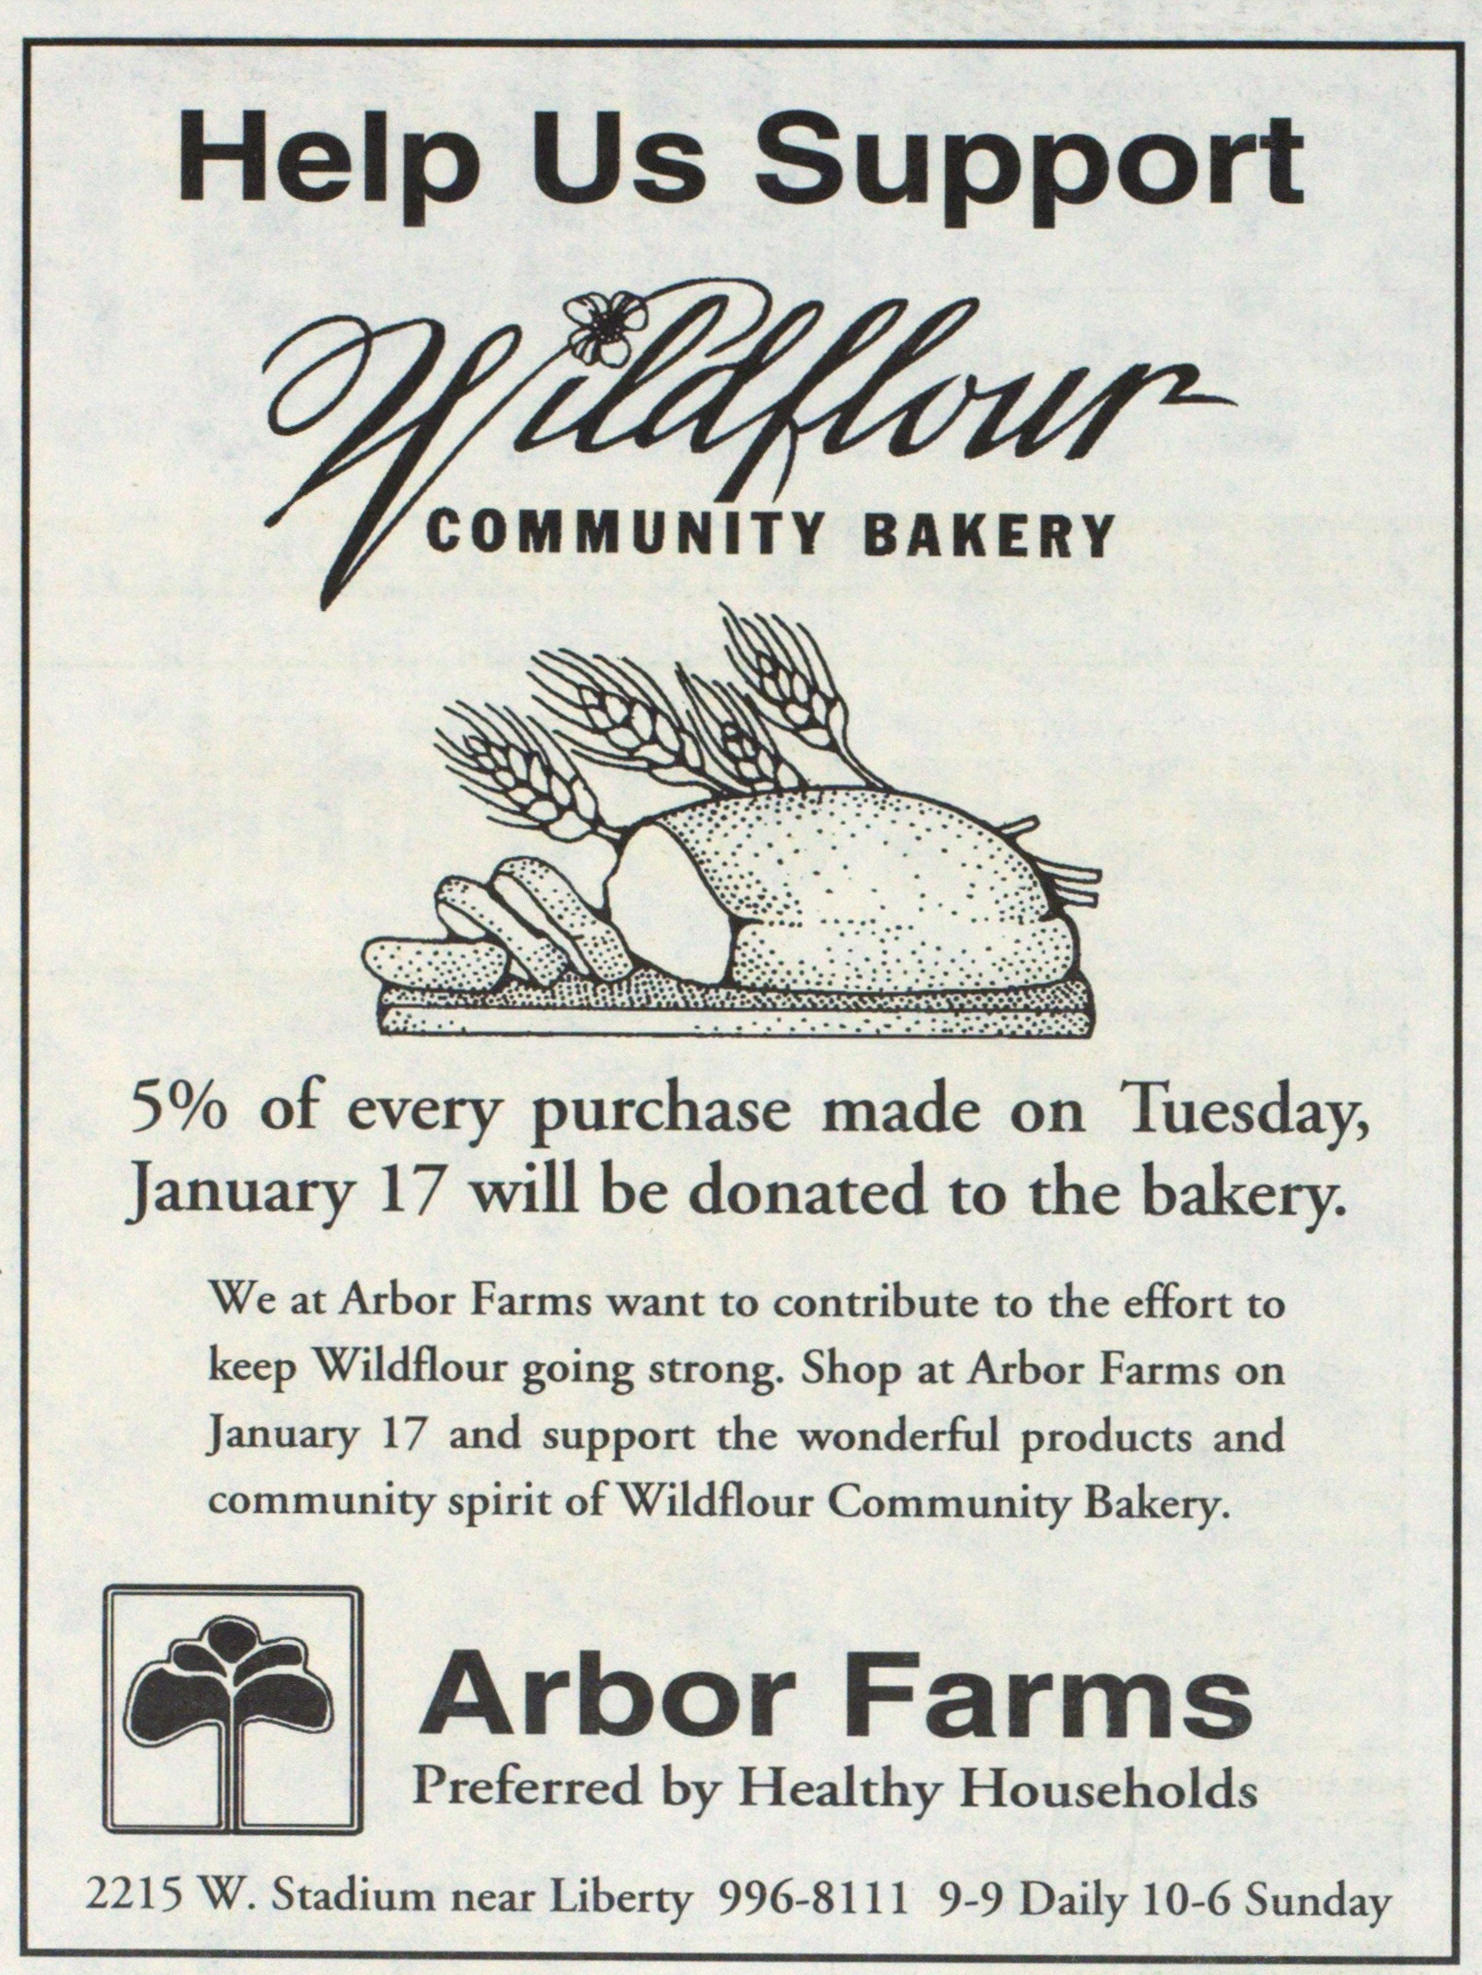 Arbor Farms image